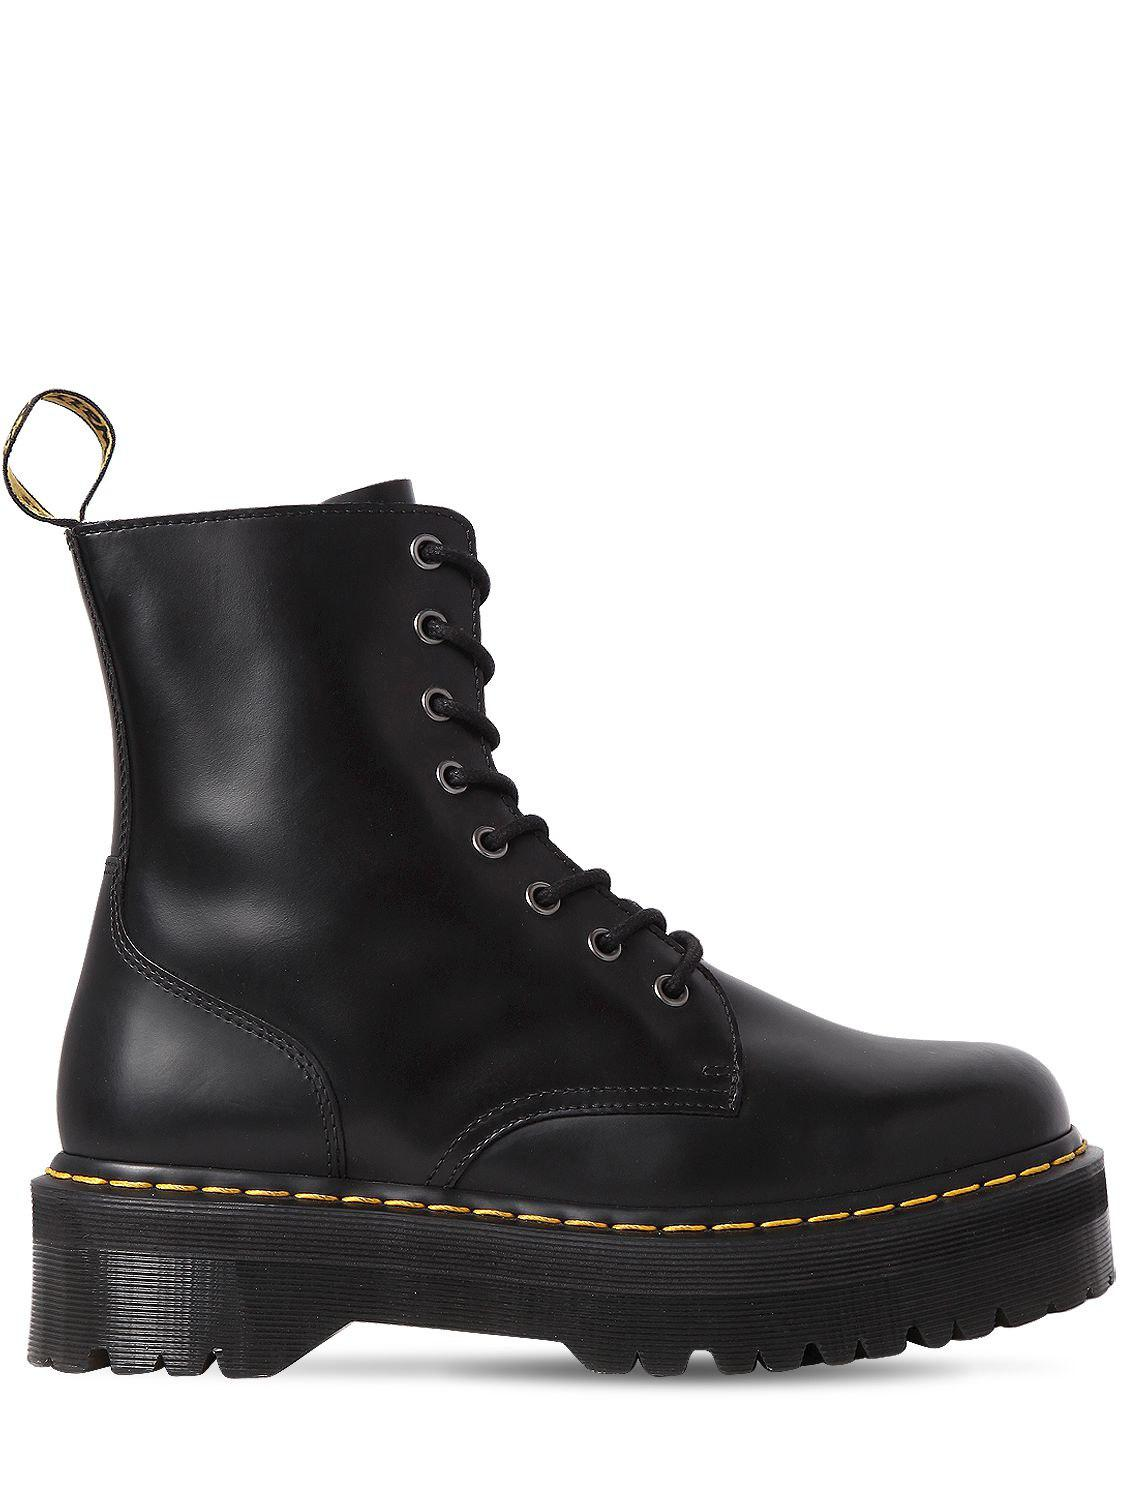 ae0347736db9 Dr. Martens 40mm Jadon Leather Boots in Black - Lyst